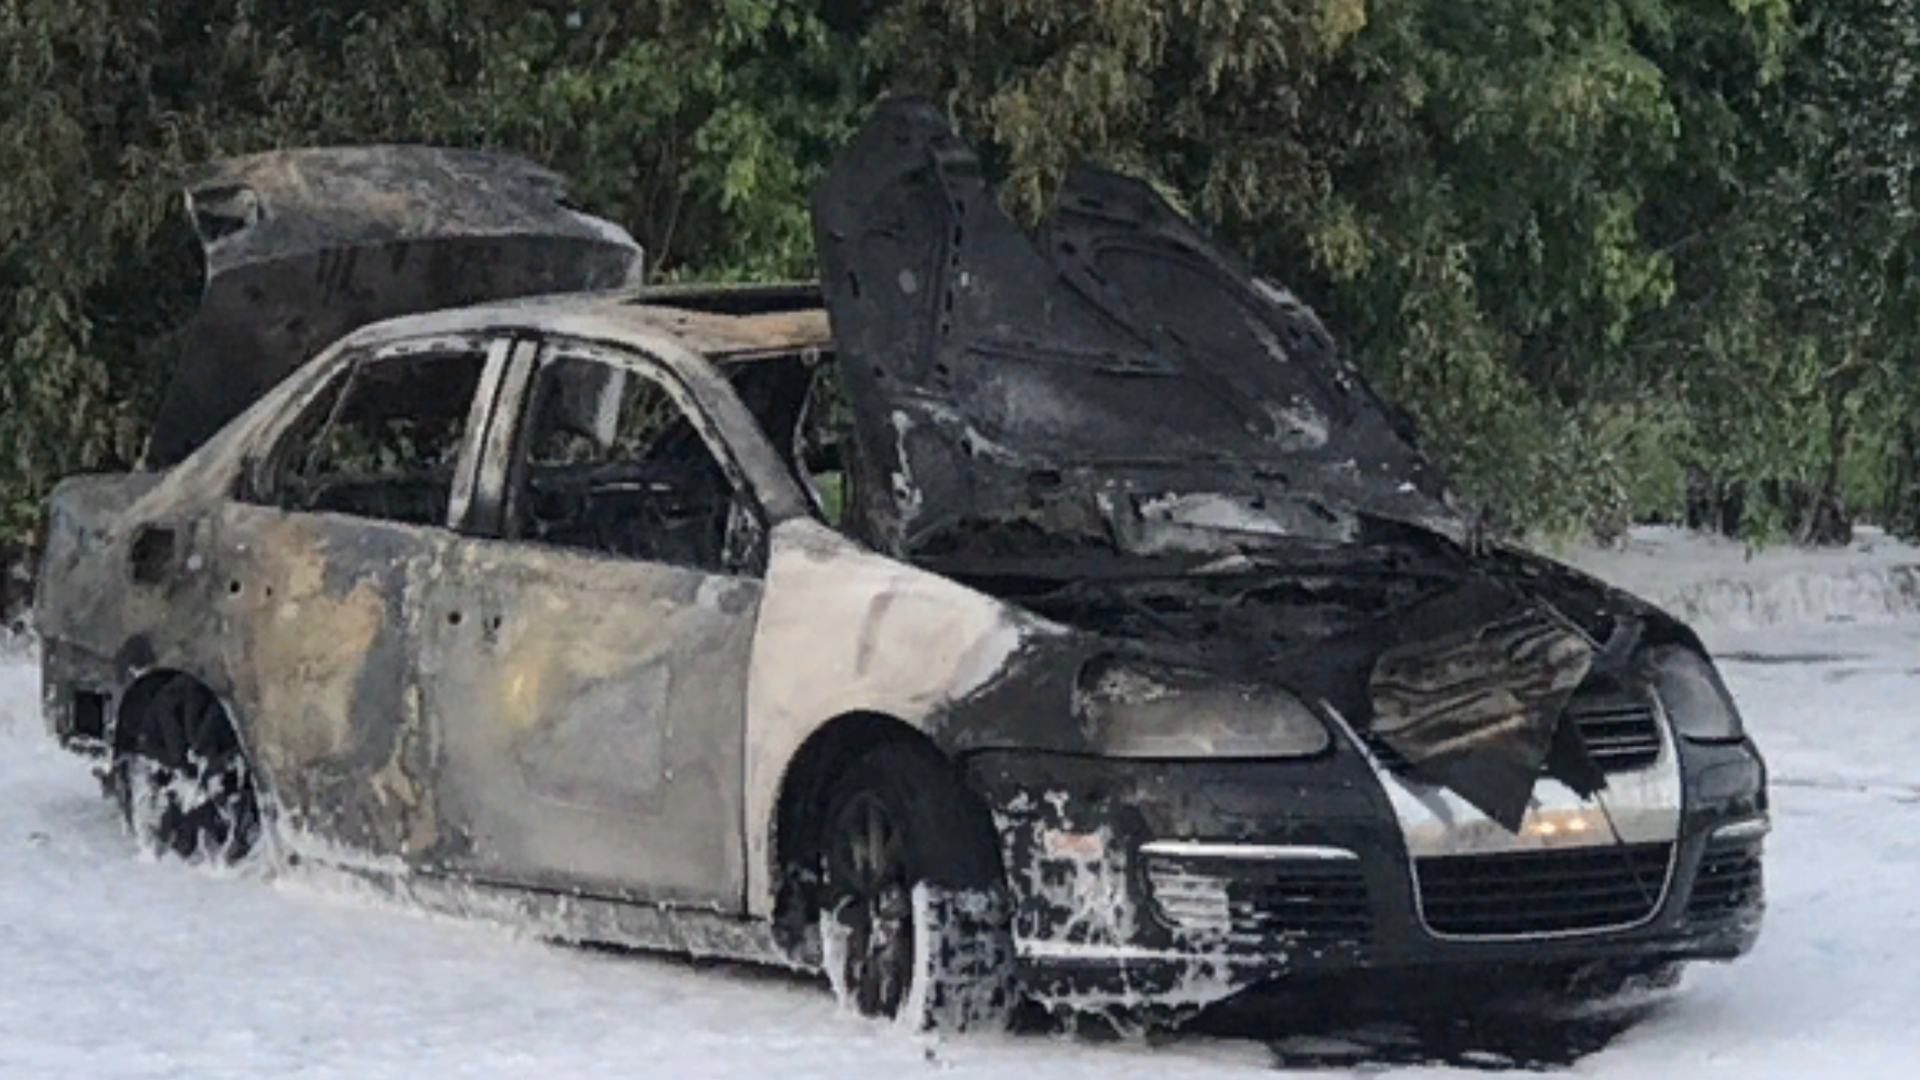 Car being sought in connection to a West Palm Beach shooting found abandoned on fire